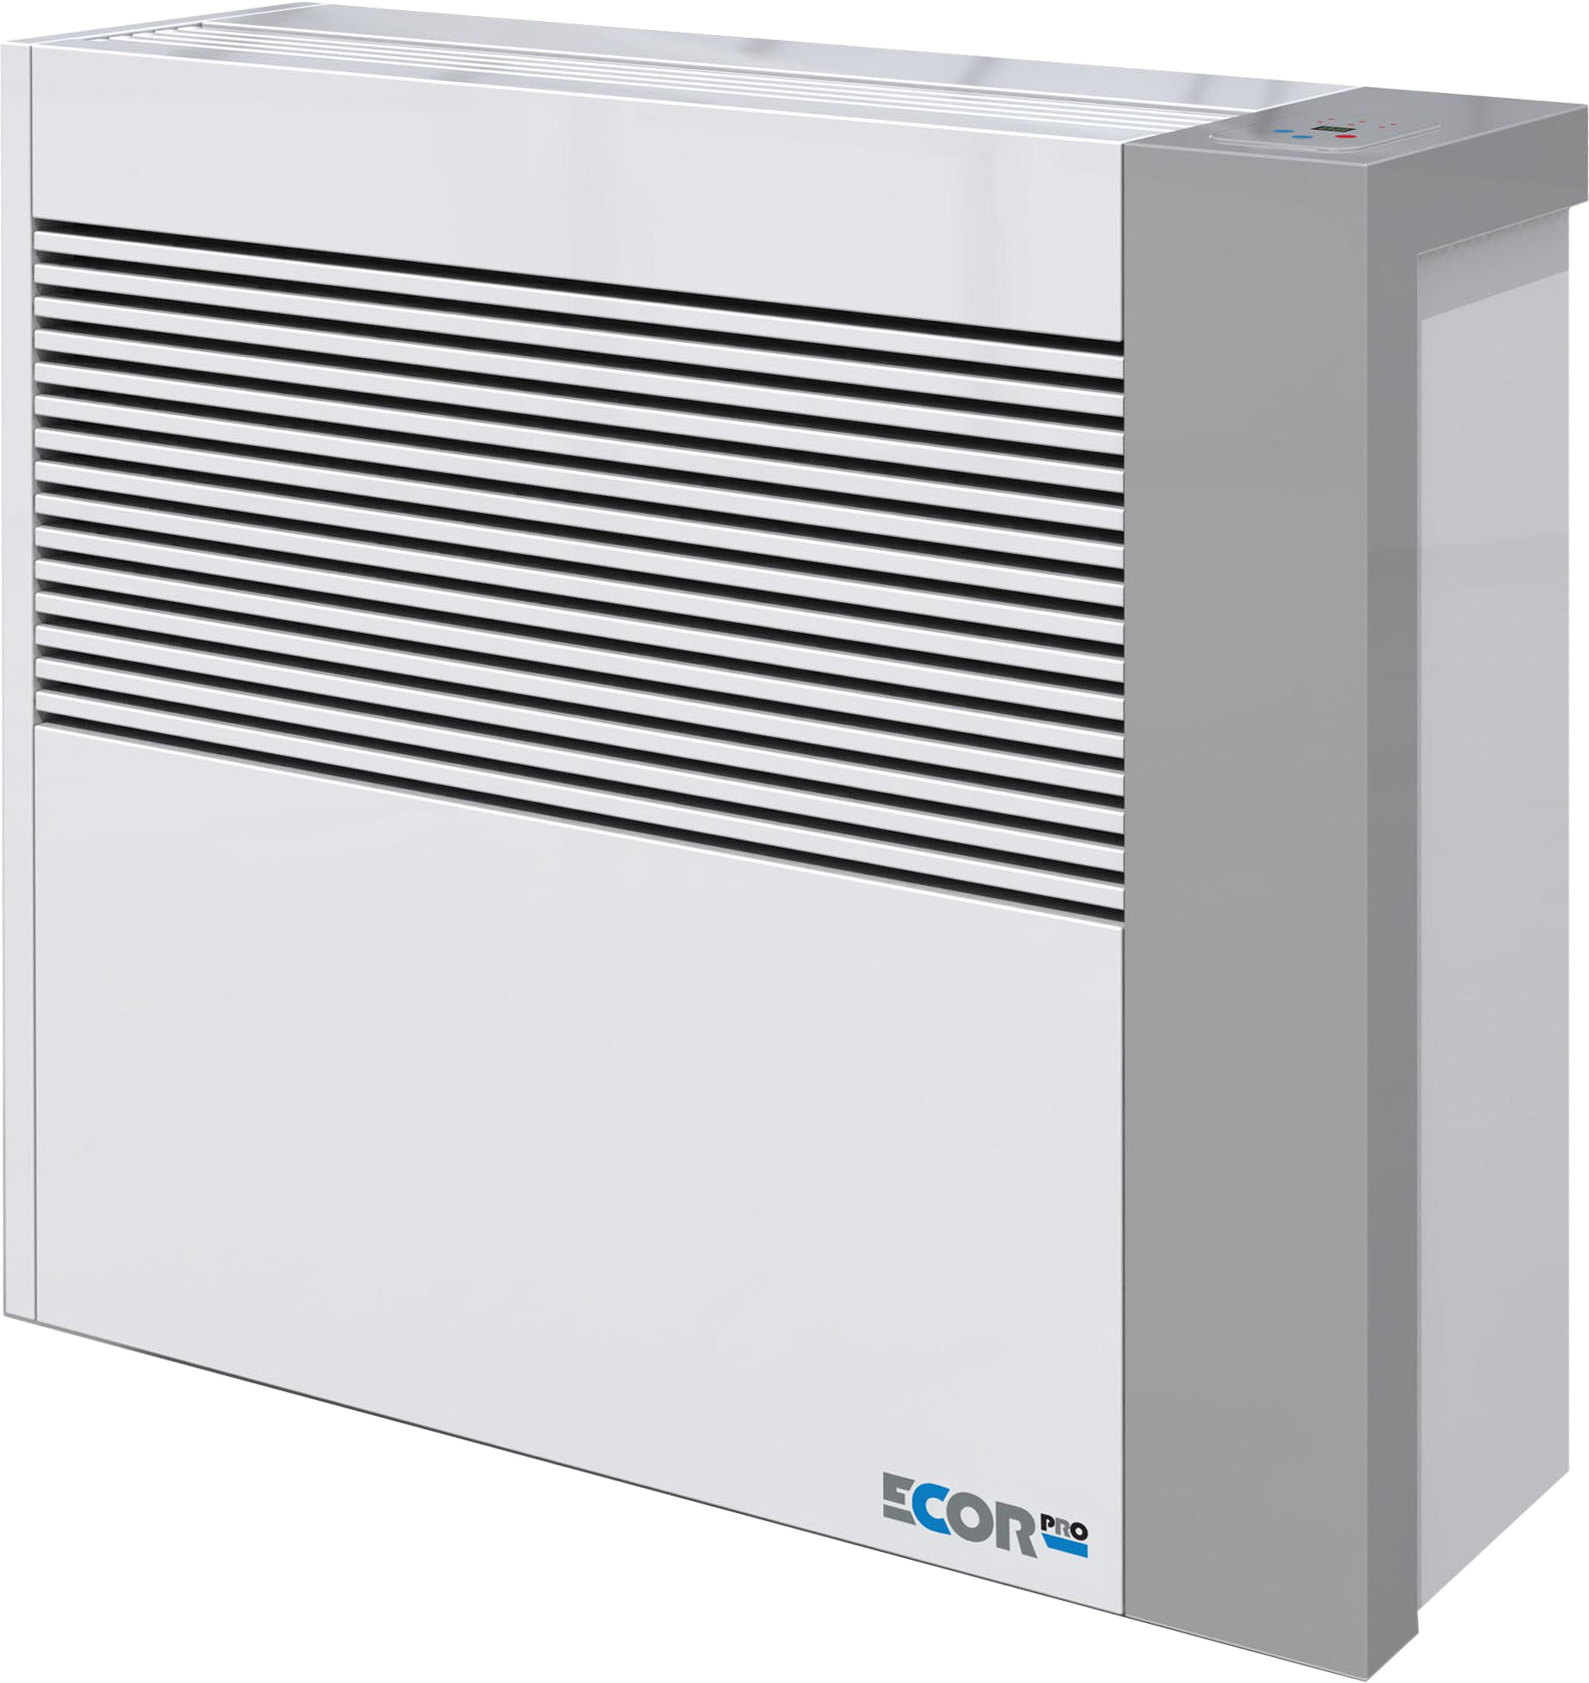 d1100 side dehumidifiers by Ecor Pro